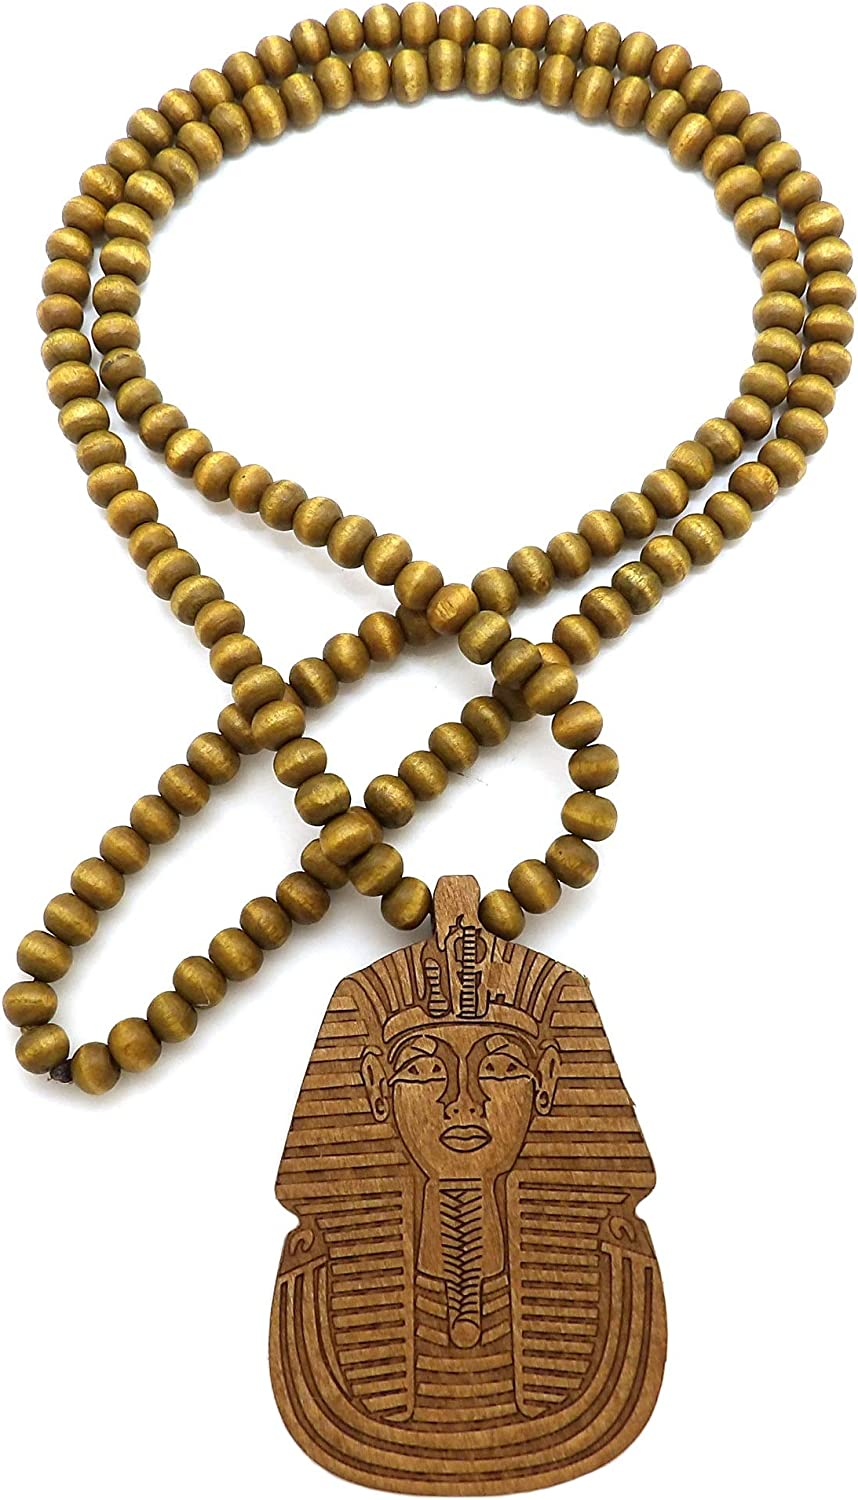 Natural Tone Fashion 21 Egypt King Pharaoh Pendant 6mm 30 Wooden Bead Necklace in Black Brown